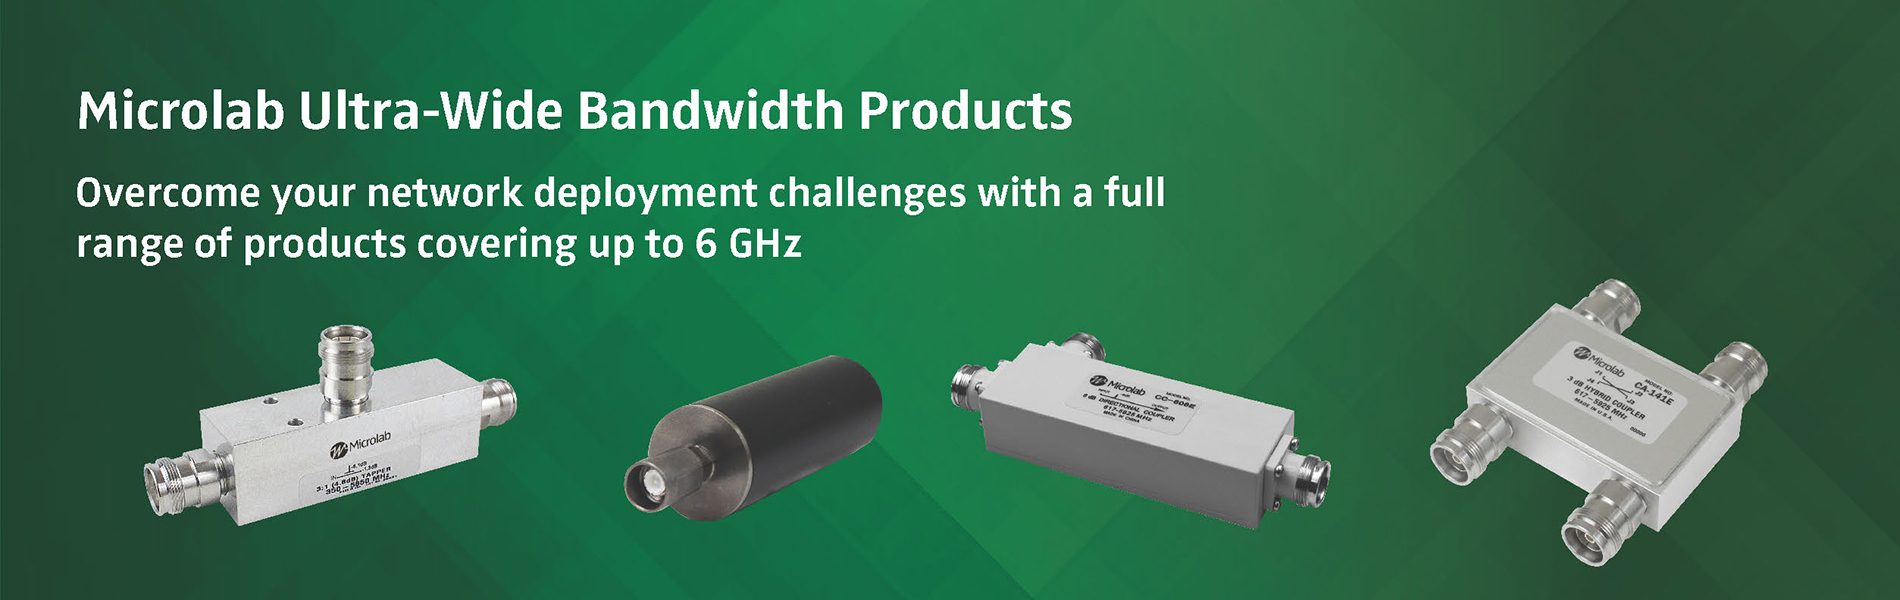 Microlab Ultra-Wide Bandwidth Products